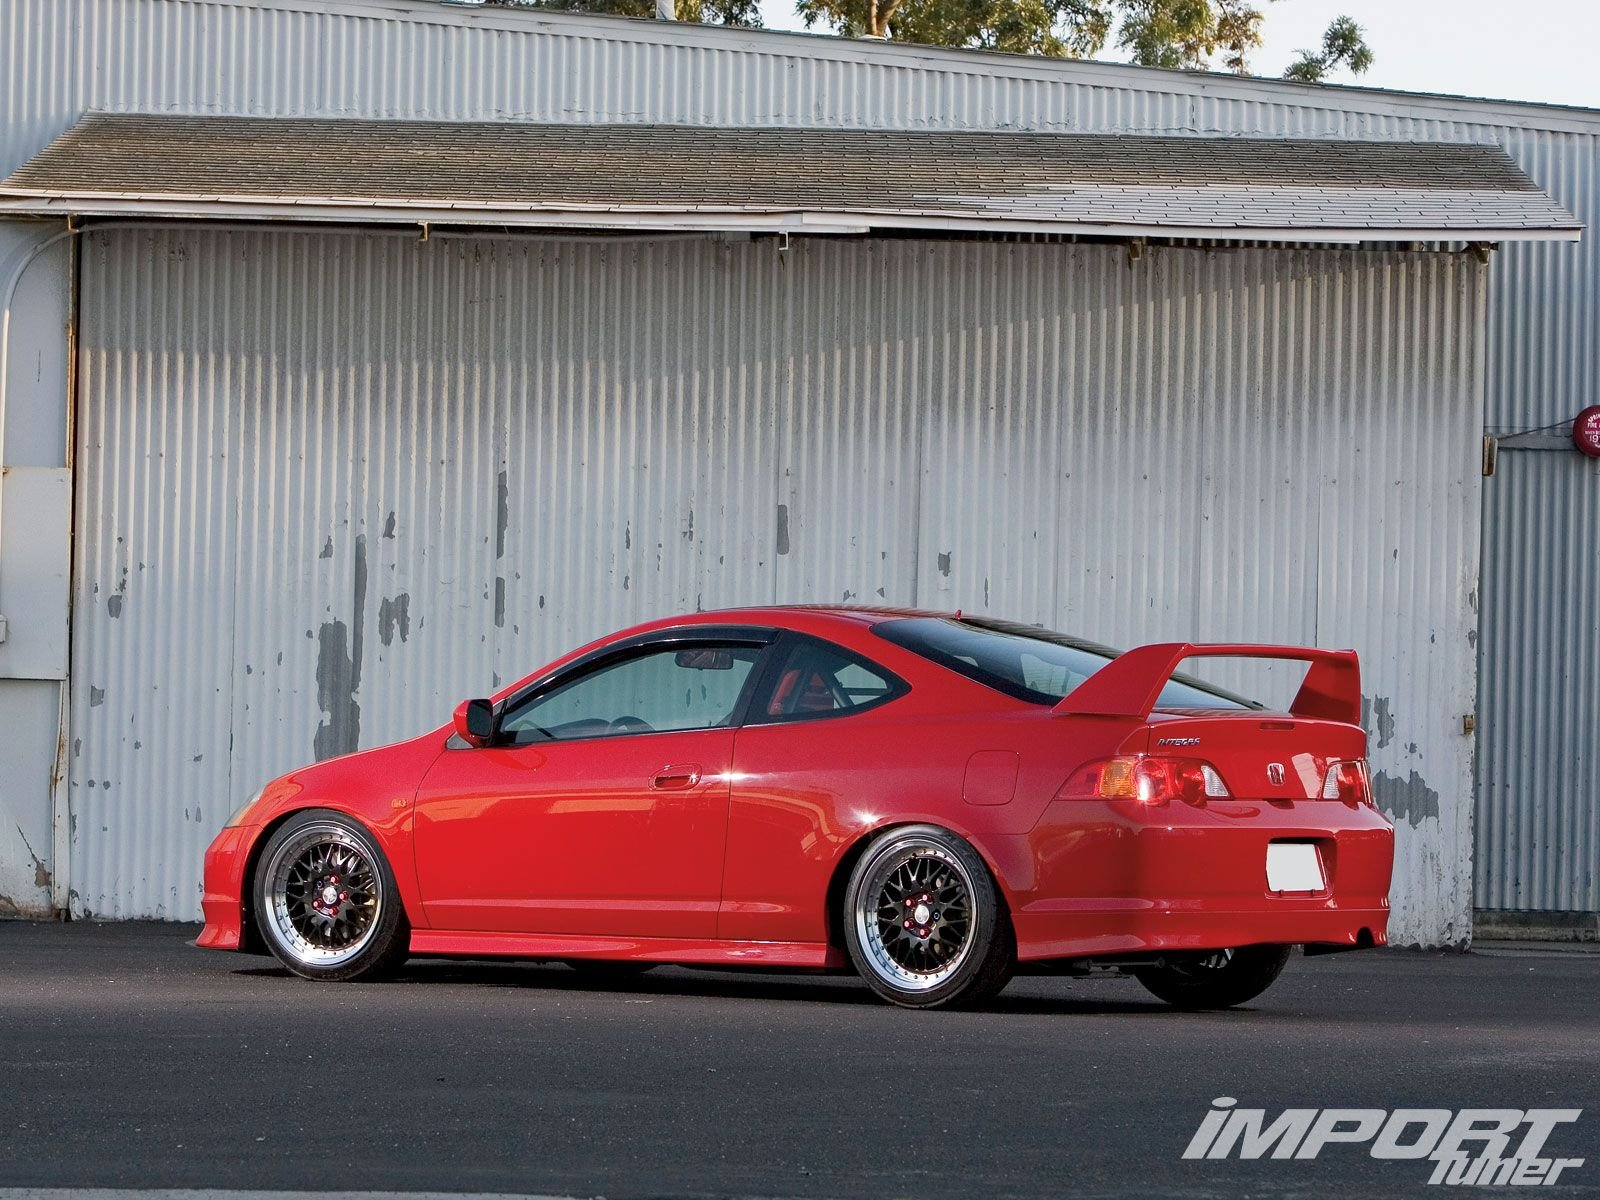 acura rsx honda coupe tuning cars japan wallpaper. Black Bedroom Furniture Sets. Home Design Ideas